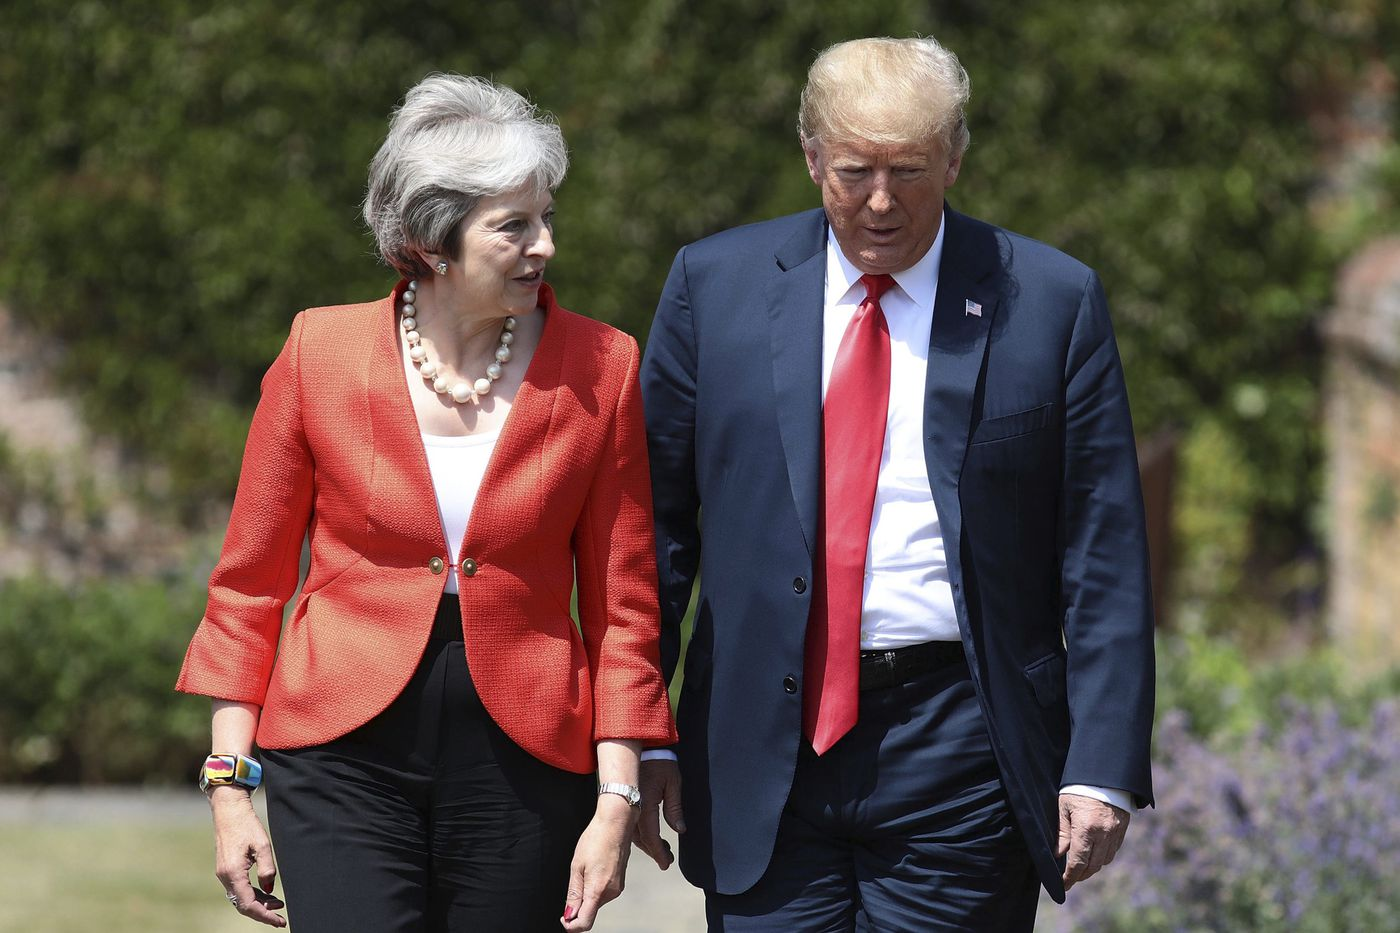 5 notable moments from Trump's first presidential visit to the UK